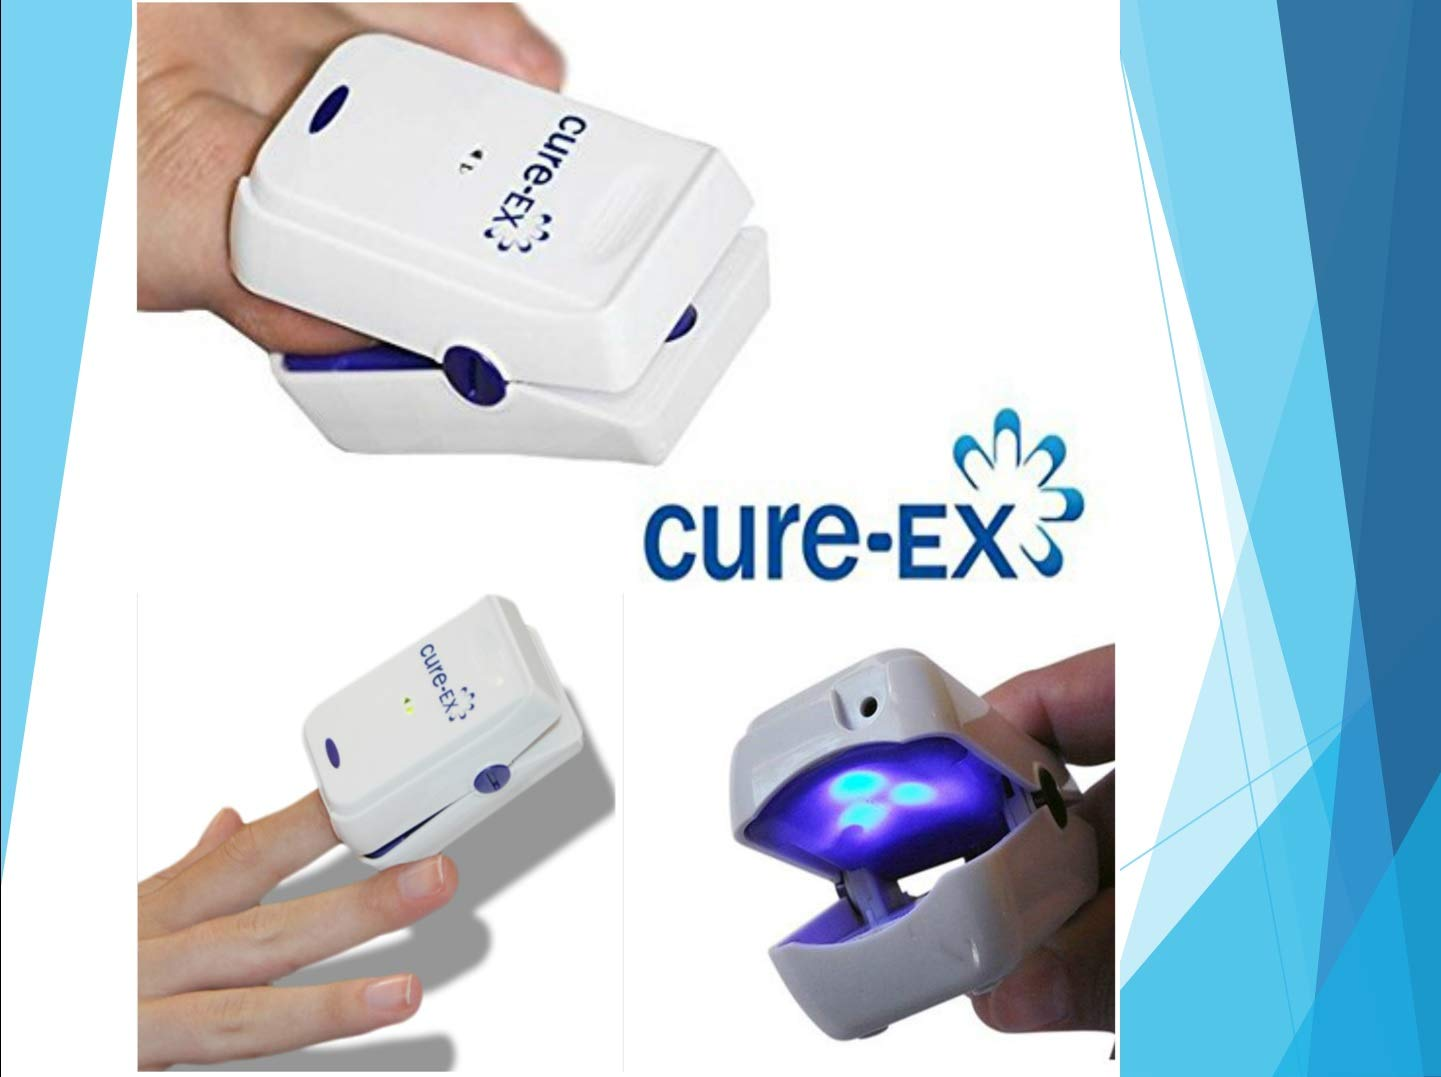 Professional Nail Fungus Treatment Laser Device - Safe Natural Antifungal Treatment for Home Use - Toenail Fungus Medication - Yellow Fungi Nail Remover - 7 Minutes a Day - Don't Be Embarrassed Again by Fungus CureX